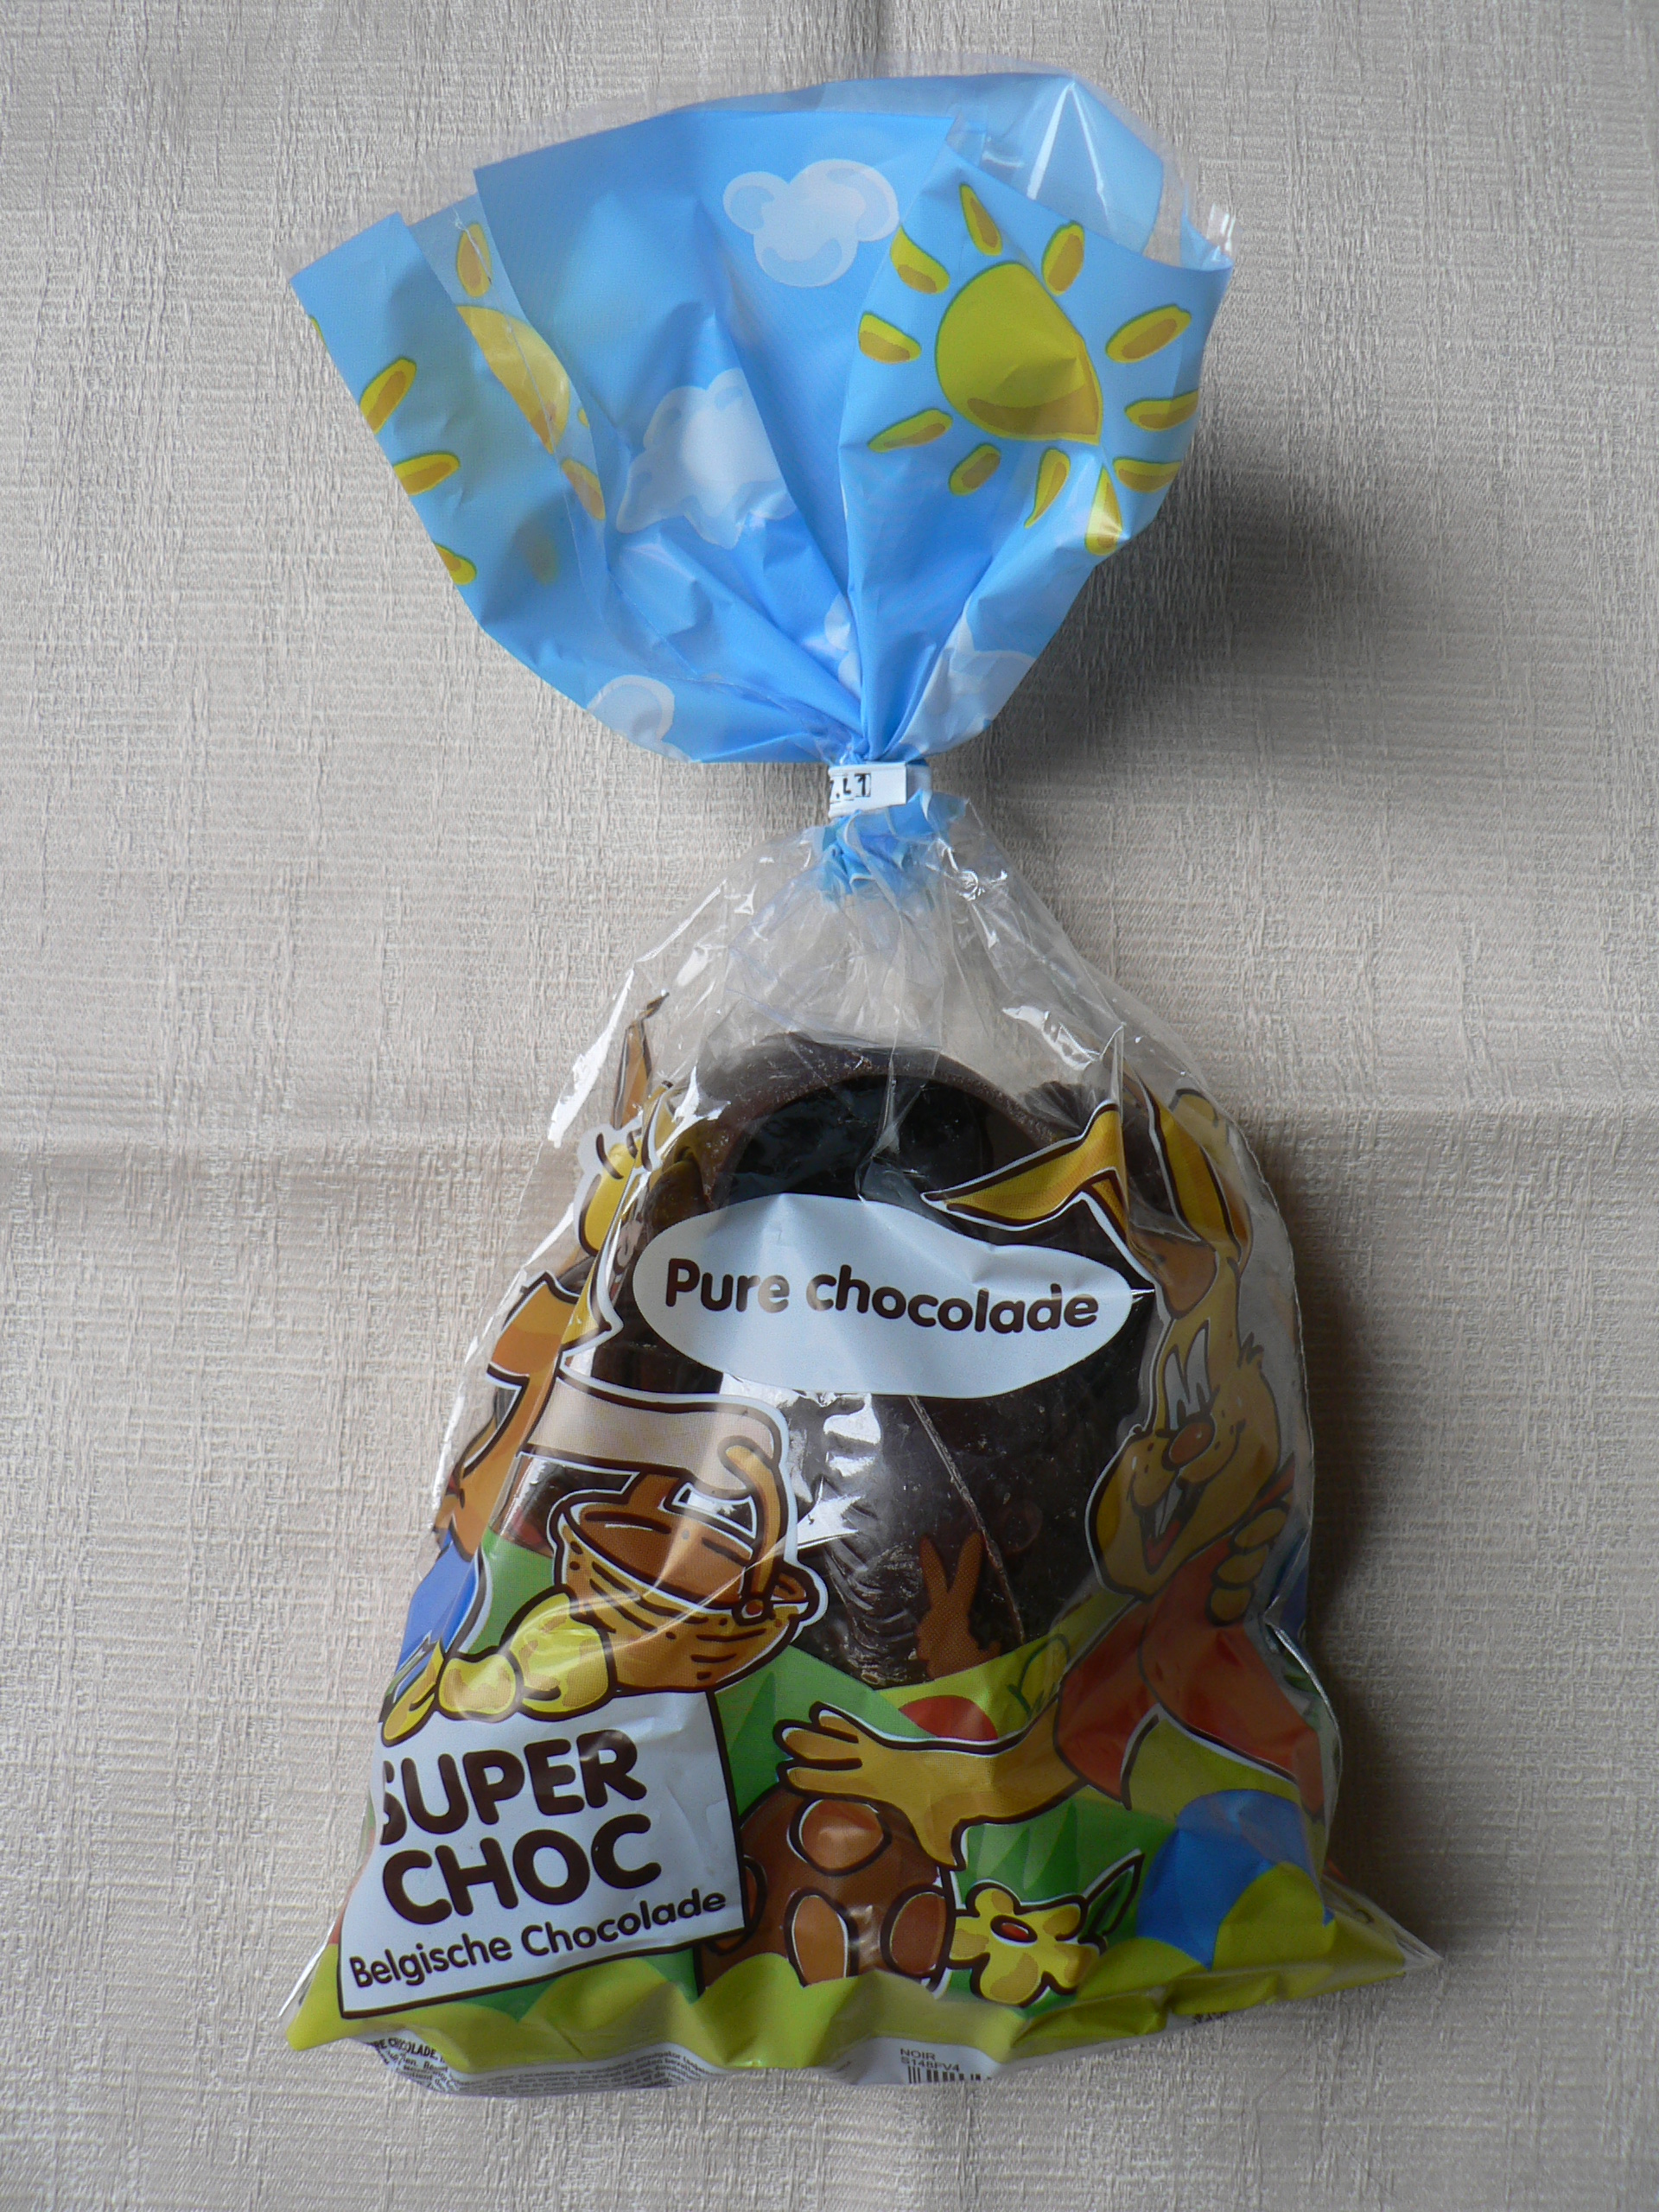 superchoc easter eggs - Colorant E120